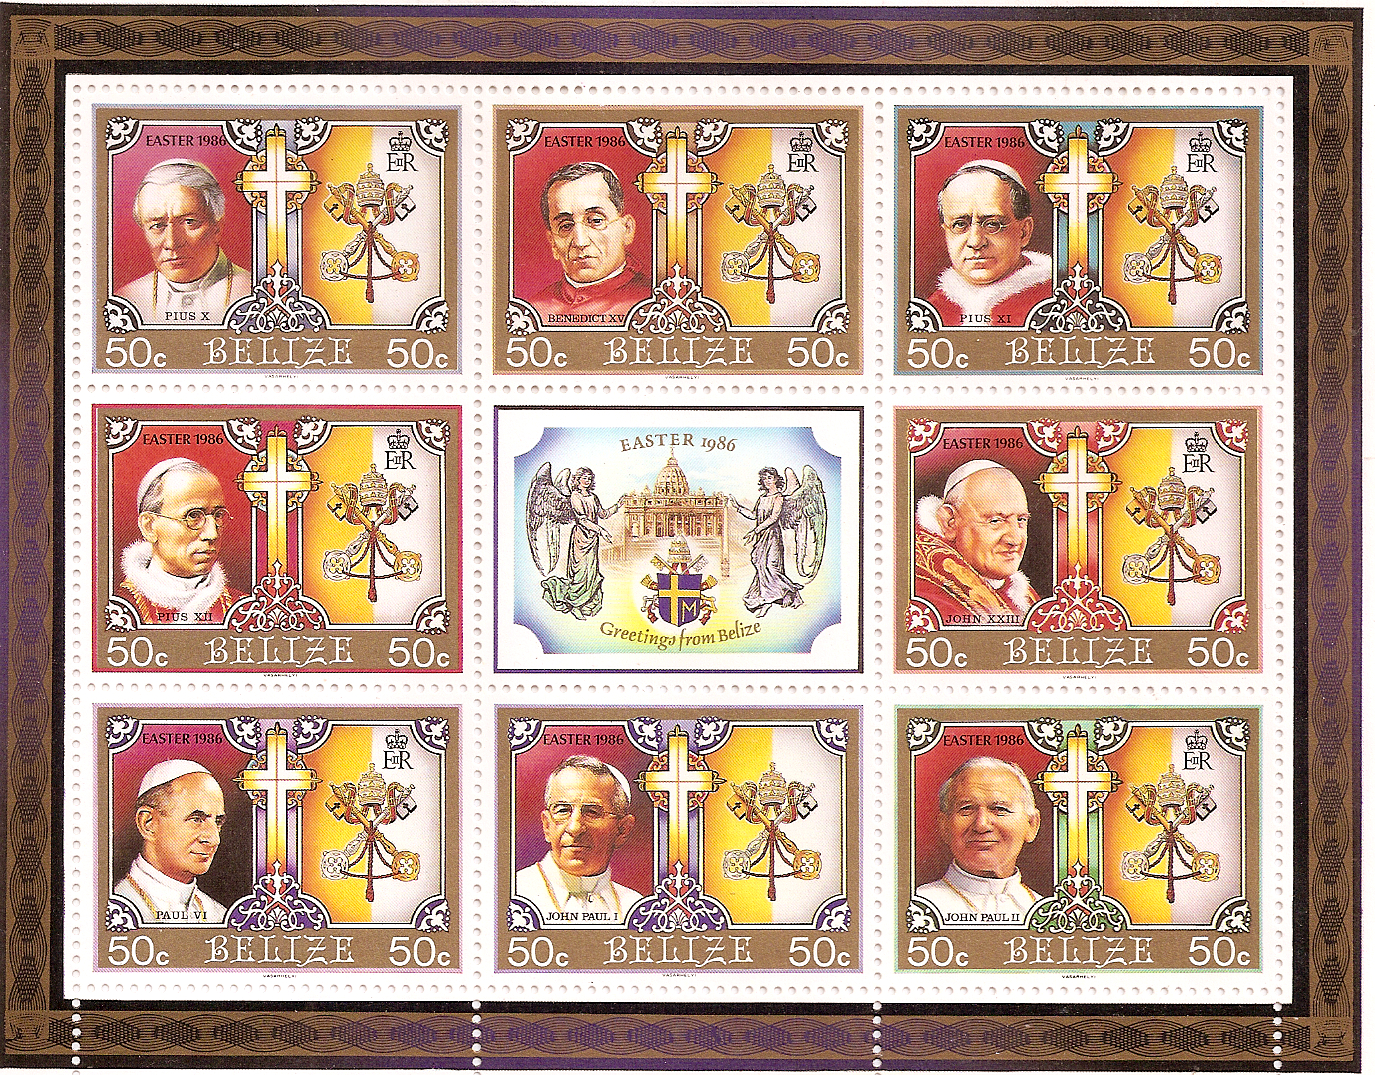 commonwealth stamps opinion 216 the popes popes of the 20th and 21st centuries 1375x1075